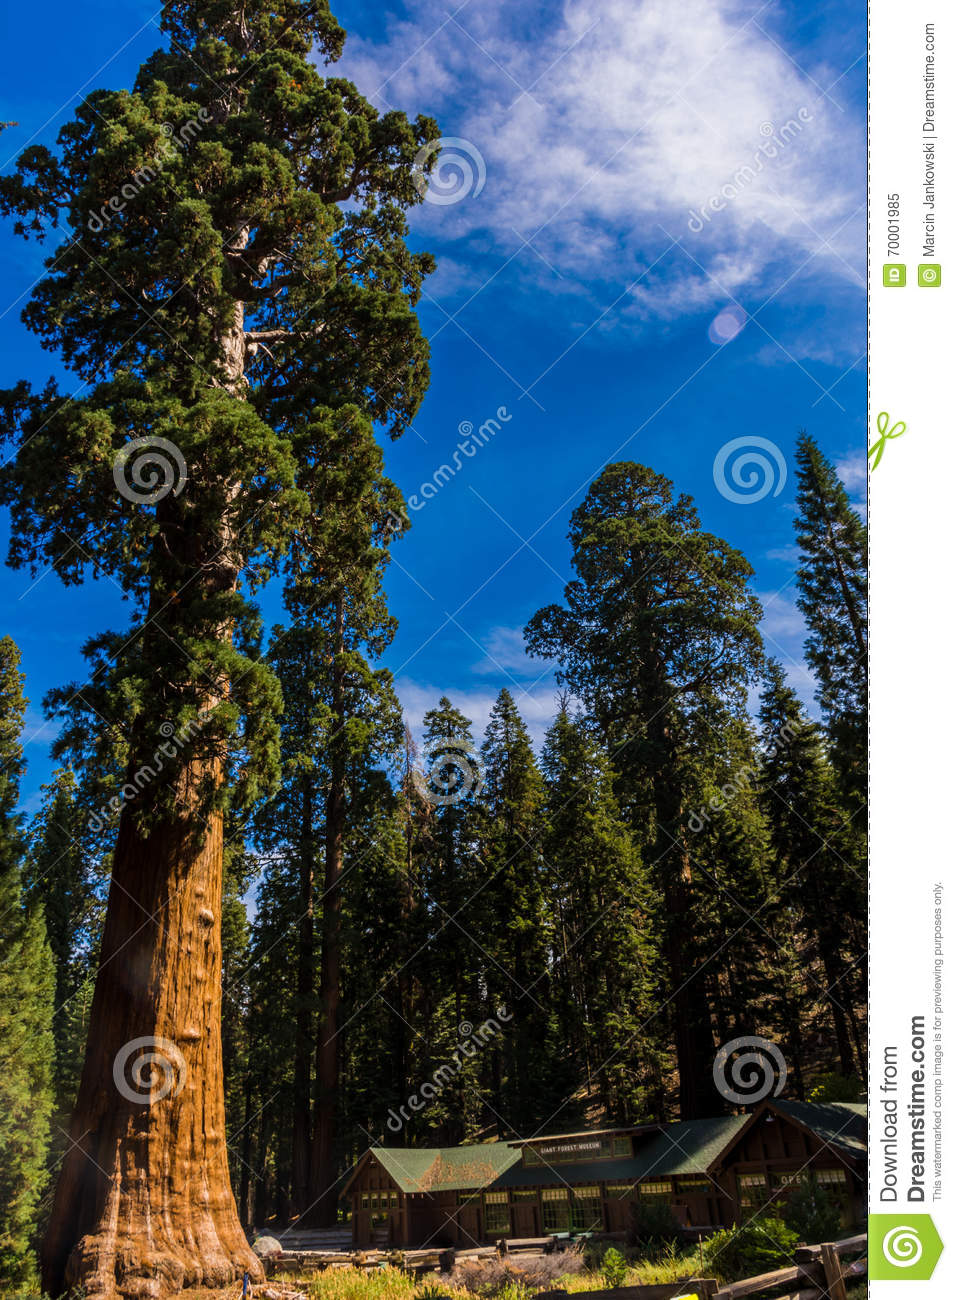 sequoia national park black singles Chatting with black singles in your black singles in monterey - meet african women online step 1 step 2 among many towering trees in sequoia national park.